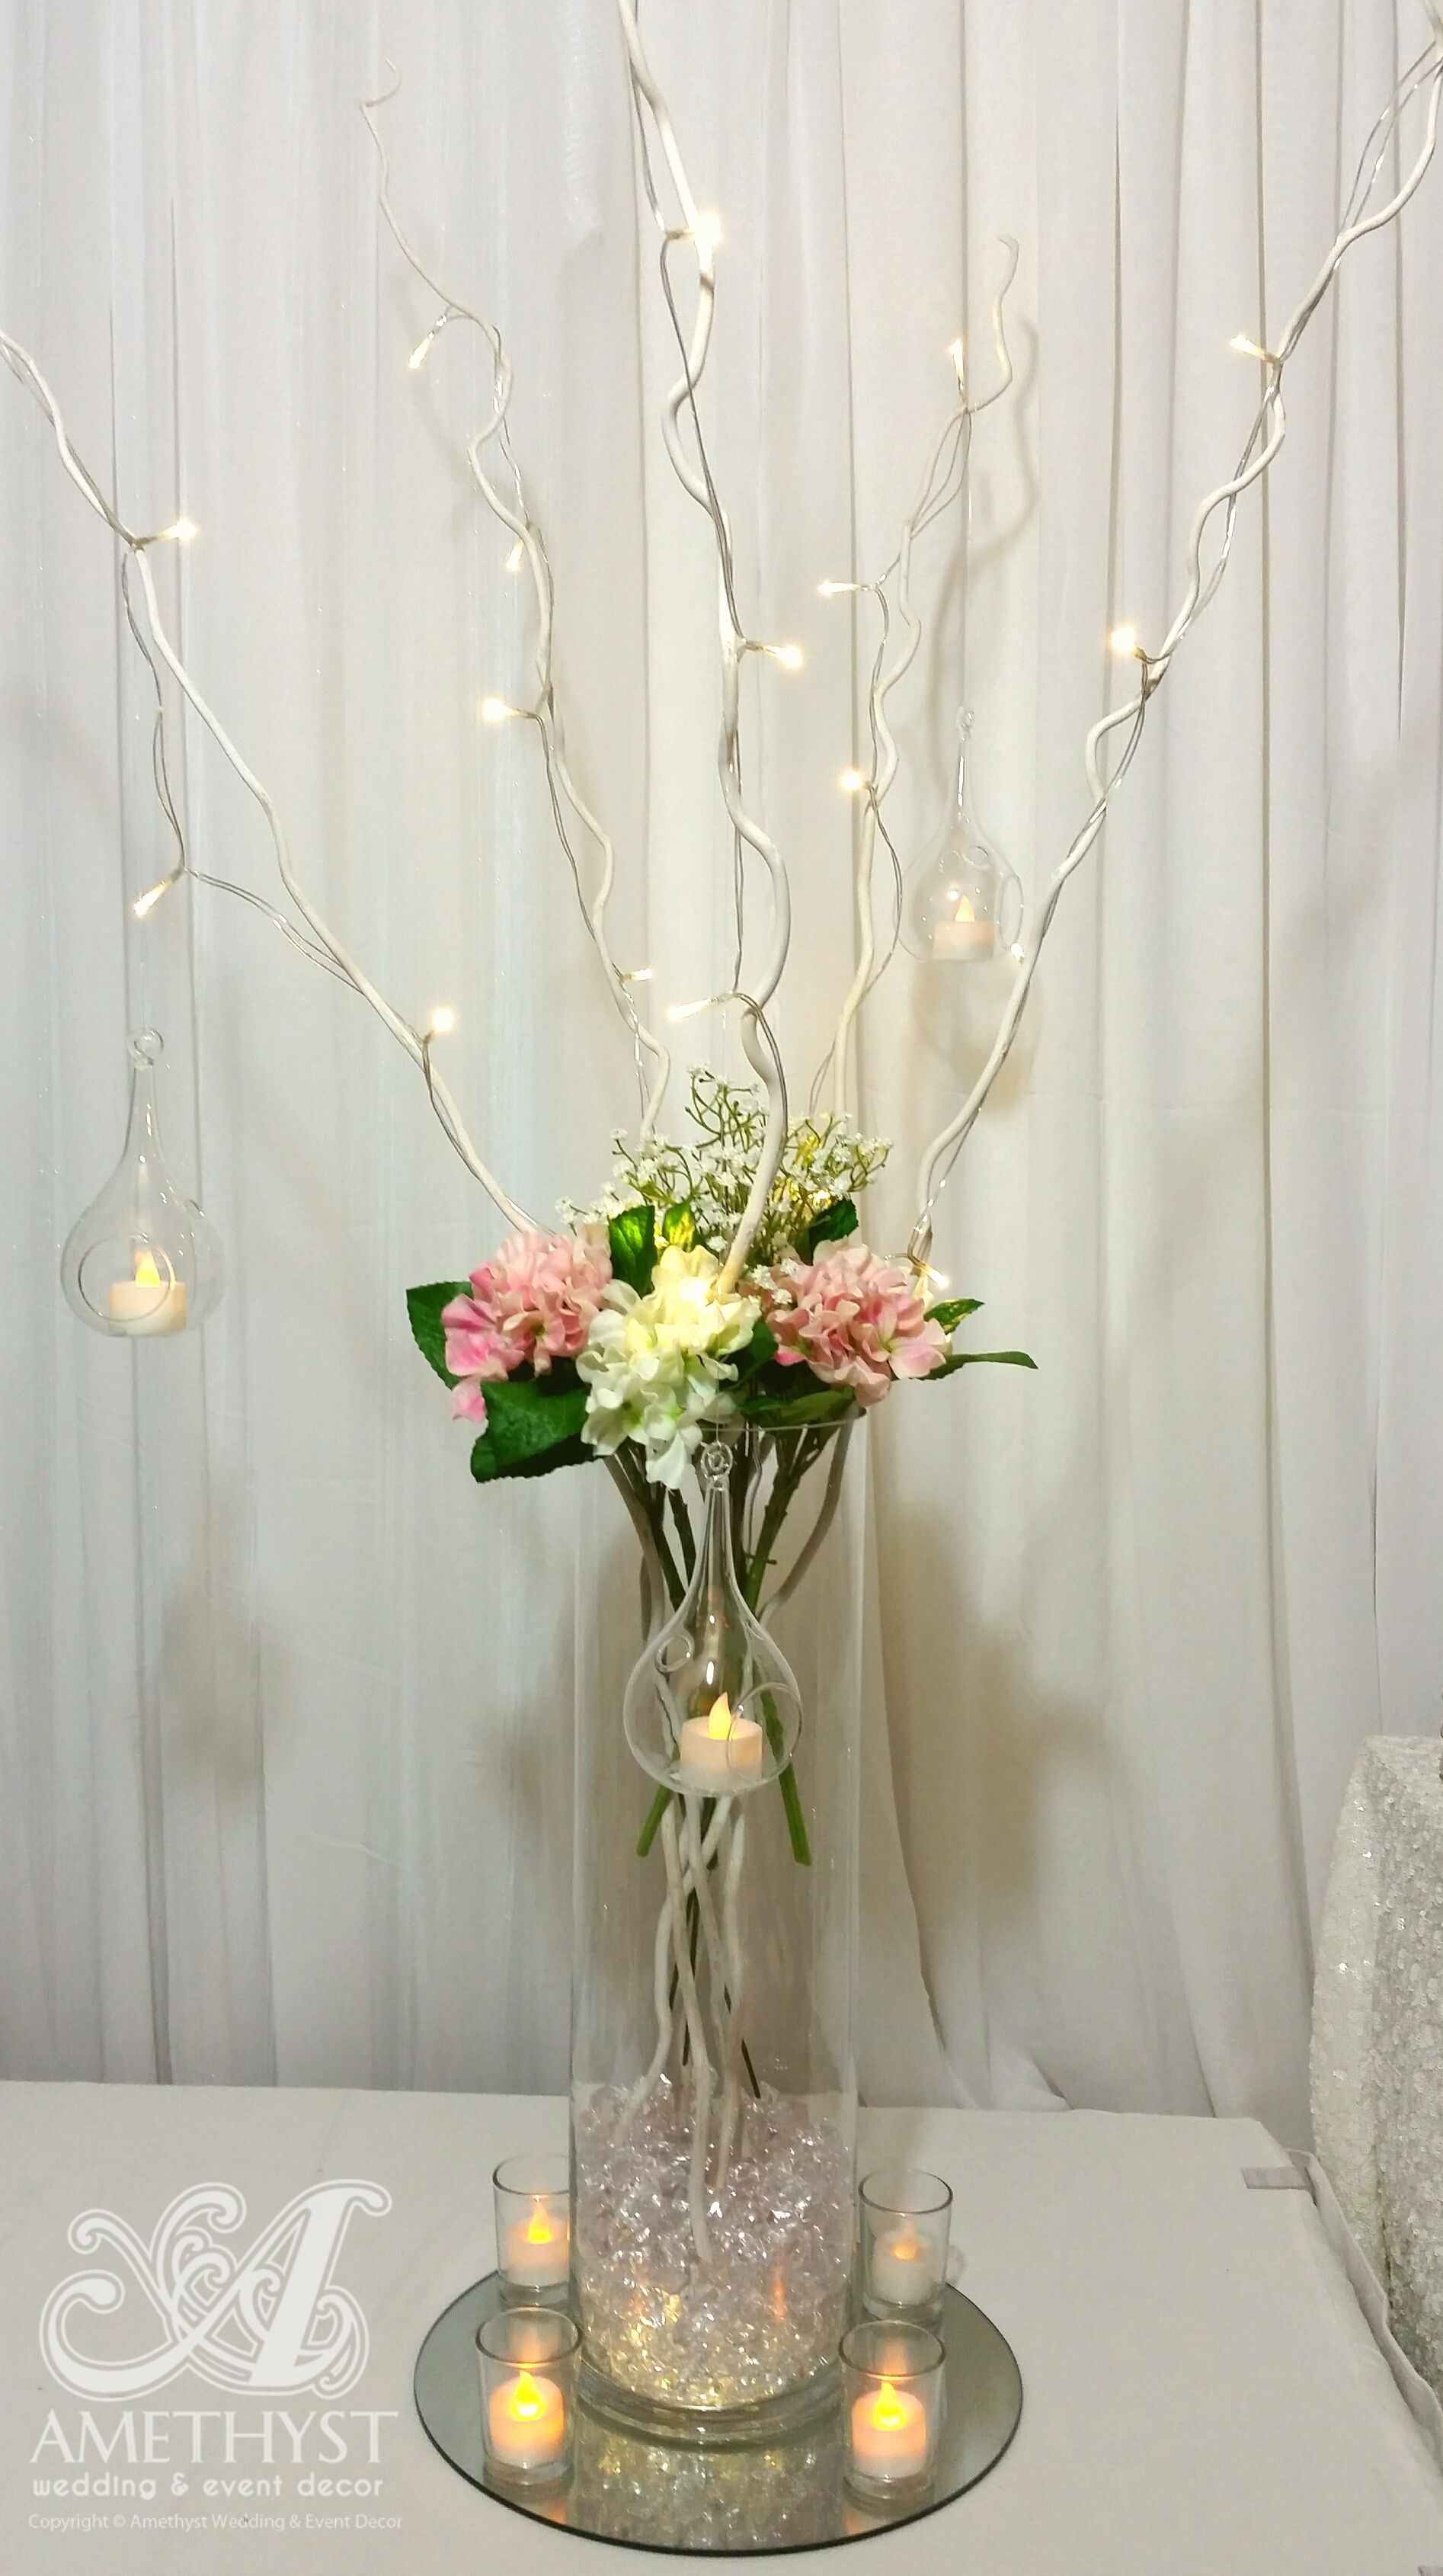 Whimsical wedding centerpiece high quality artificial